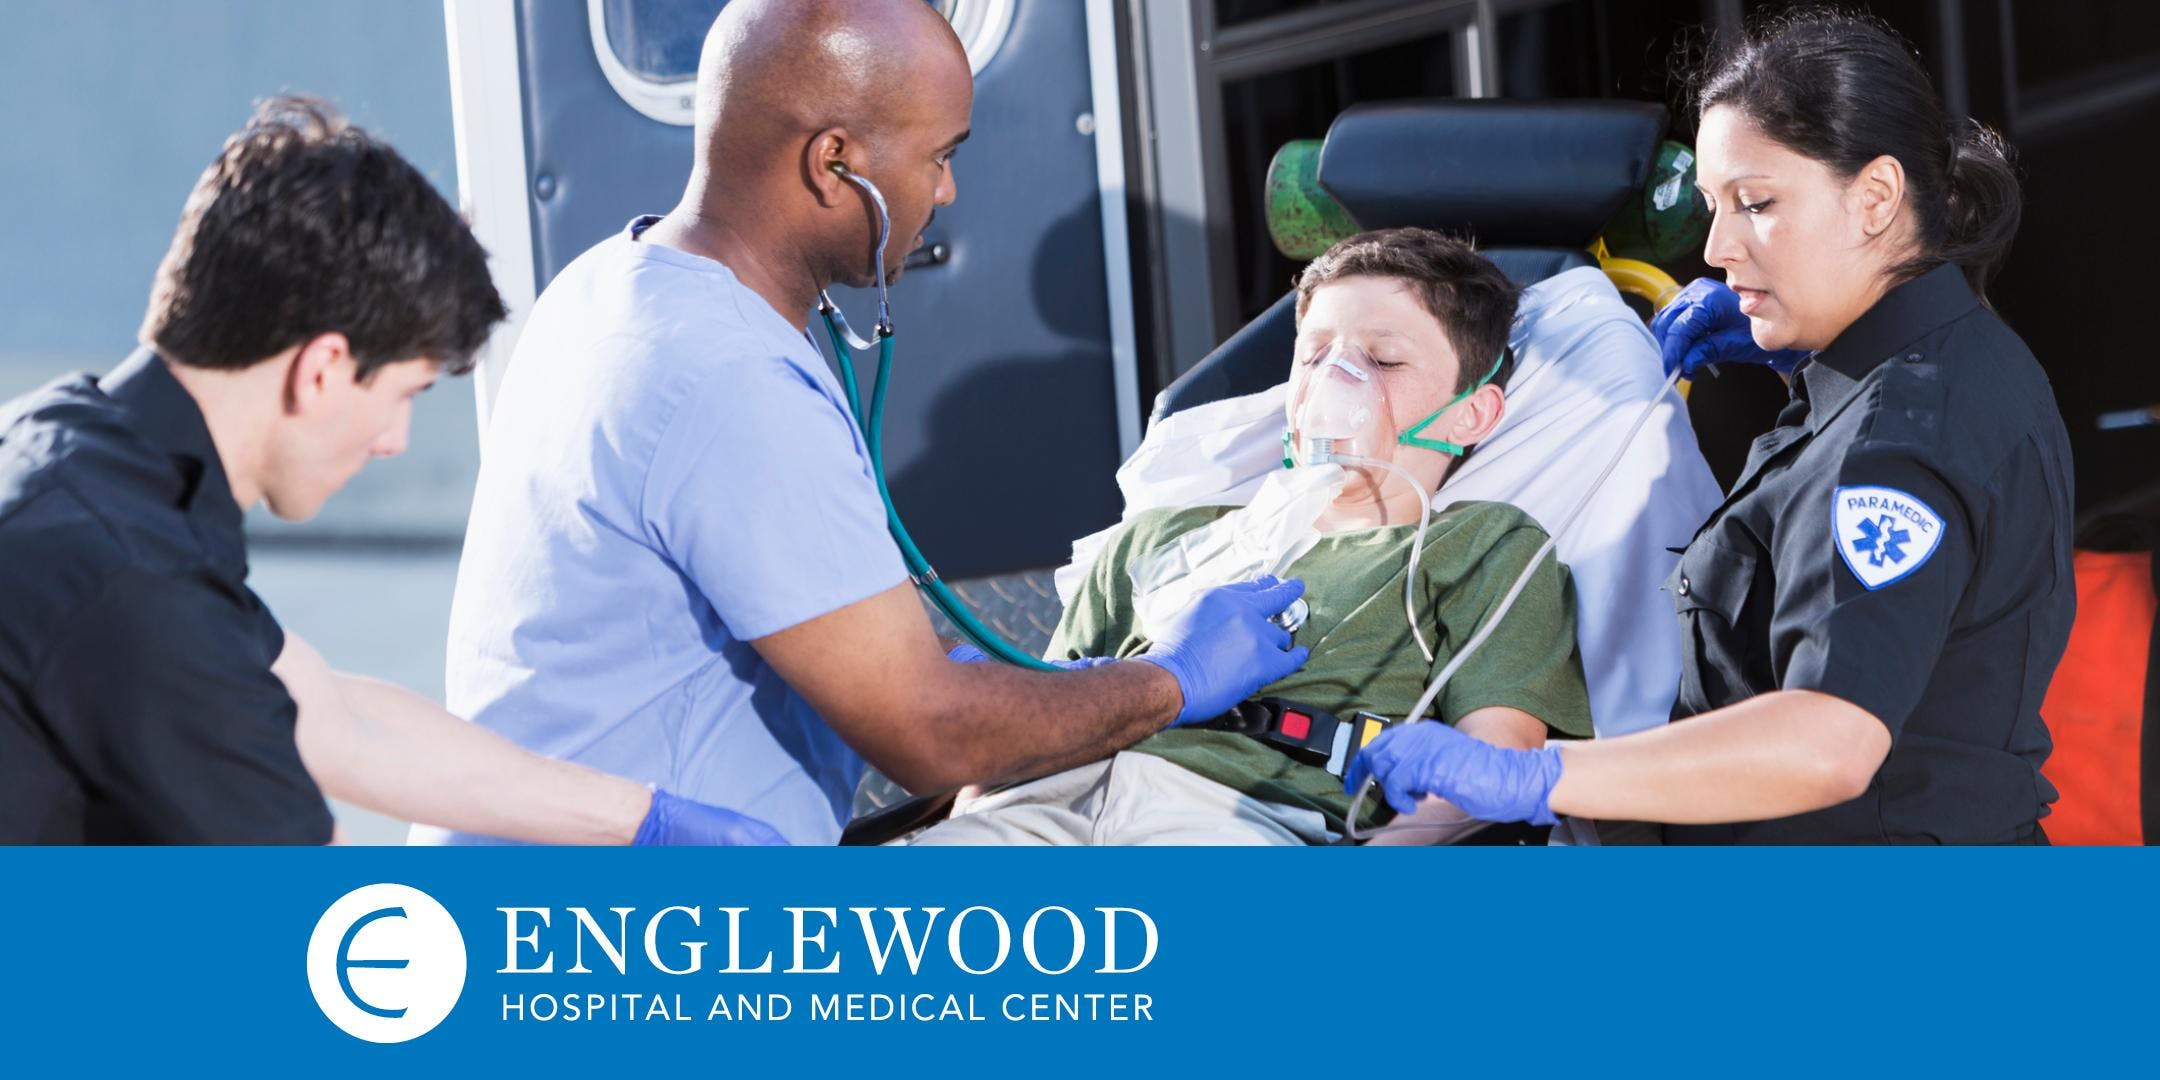 More info: Pediatric Emergency Assessment Recognition and Stabilization Course (PEARS)